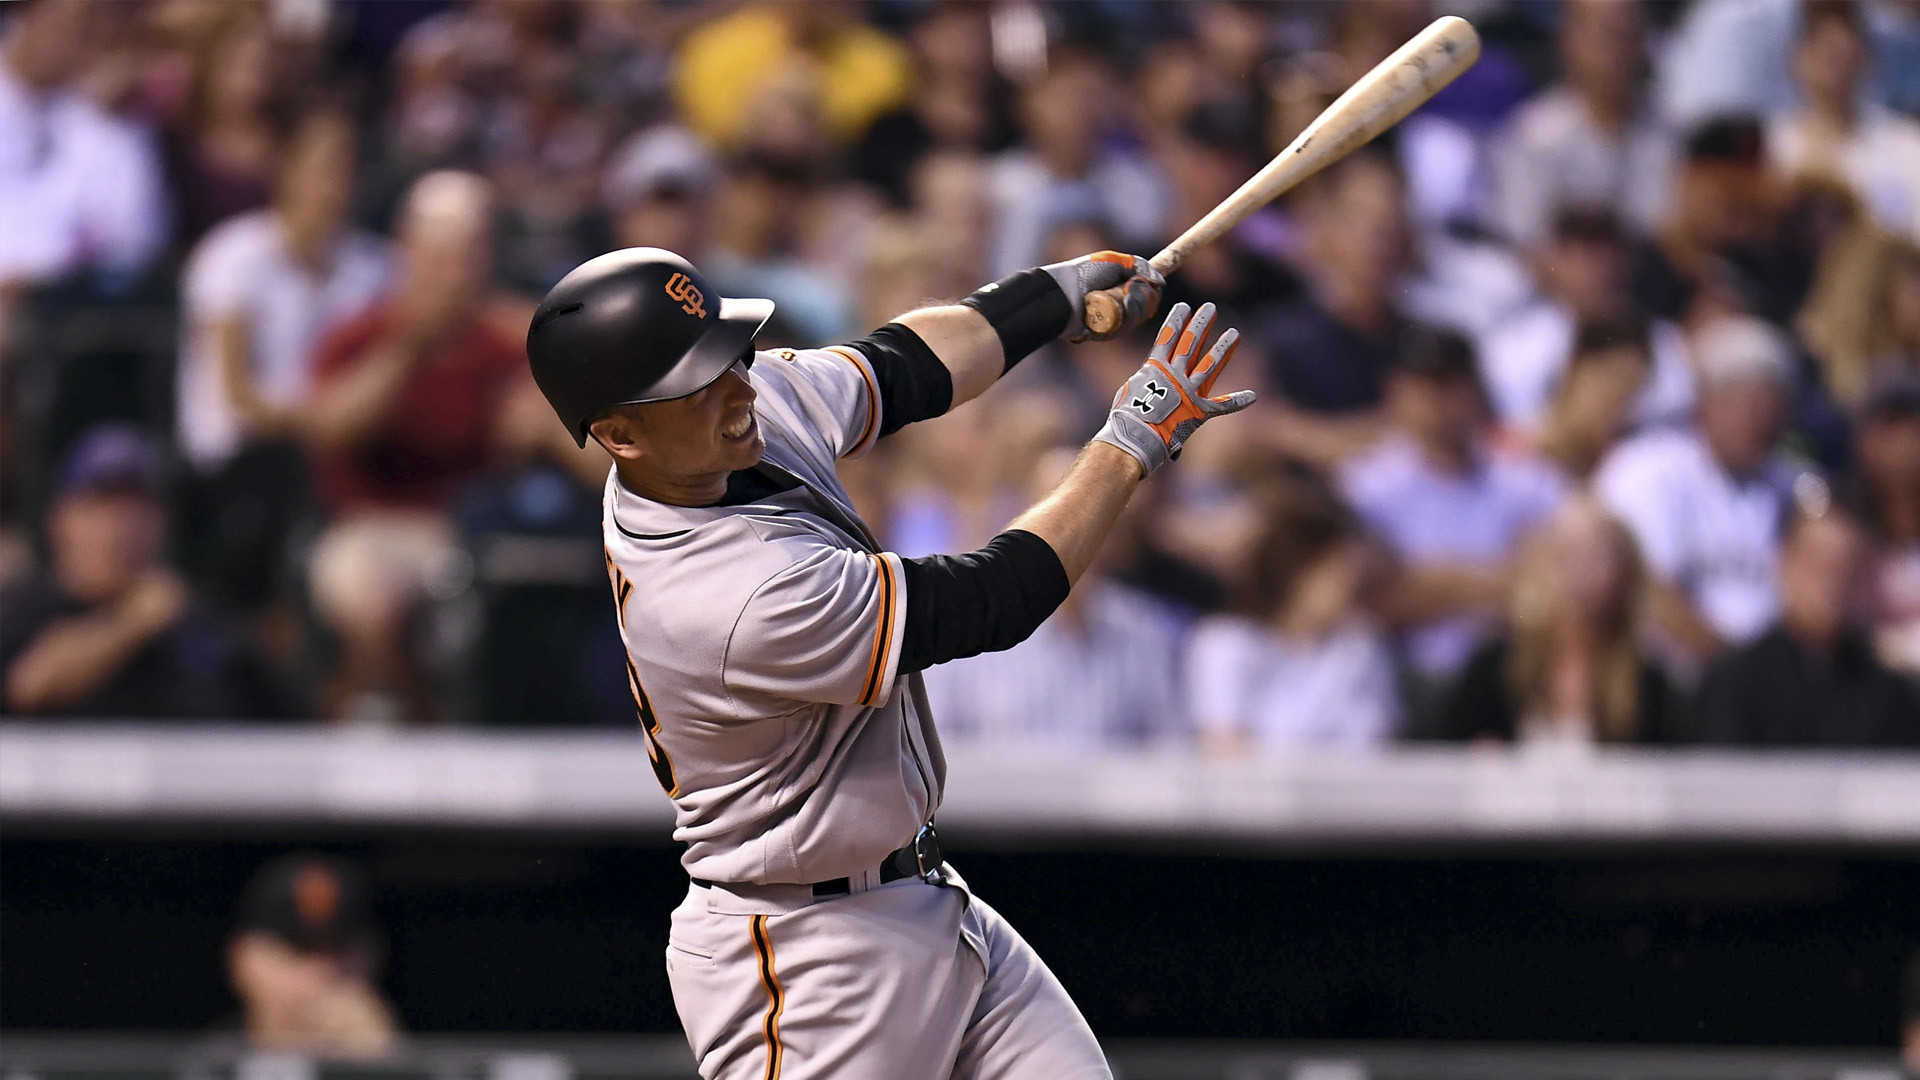 Giants' Nunez, Posey exit early with leg injuries against Rockies | NBCS  Bay Area